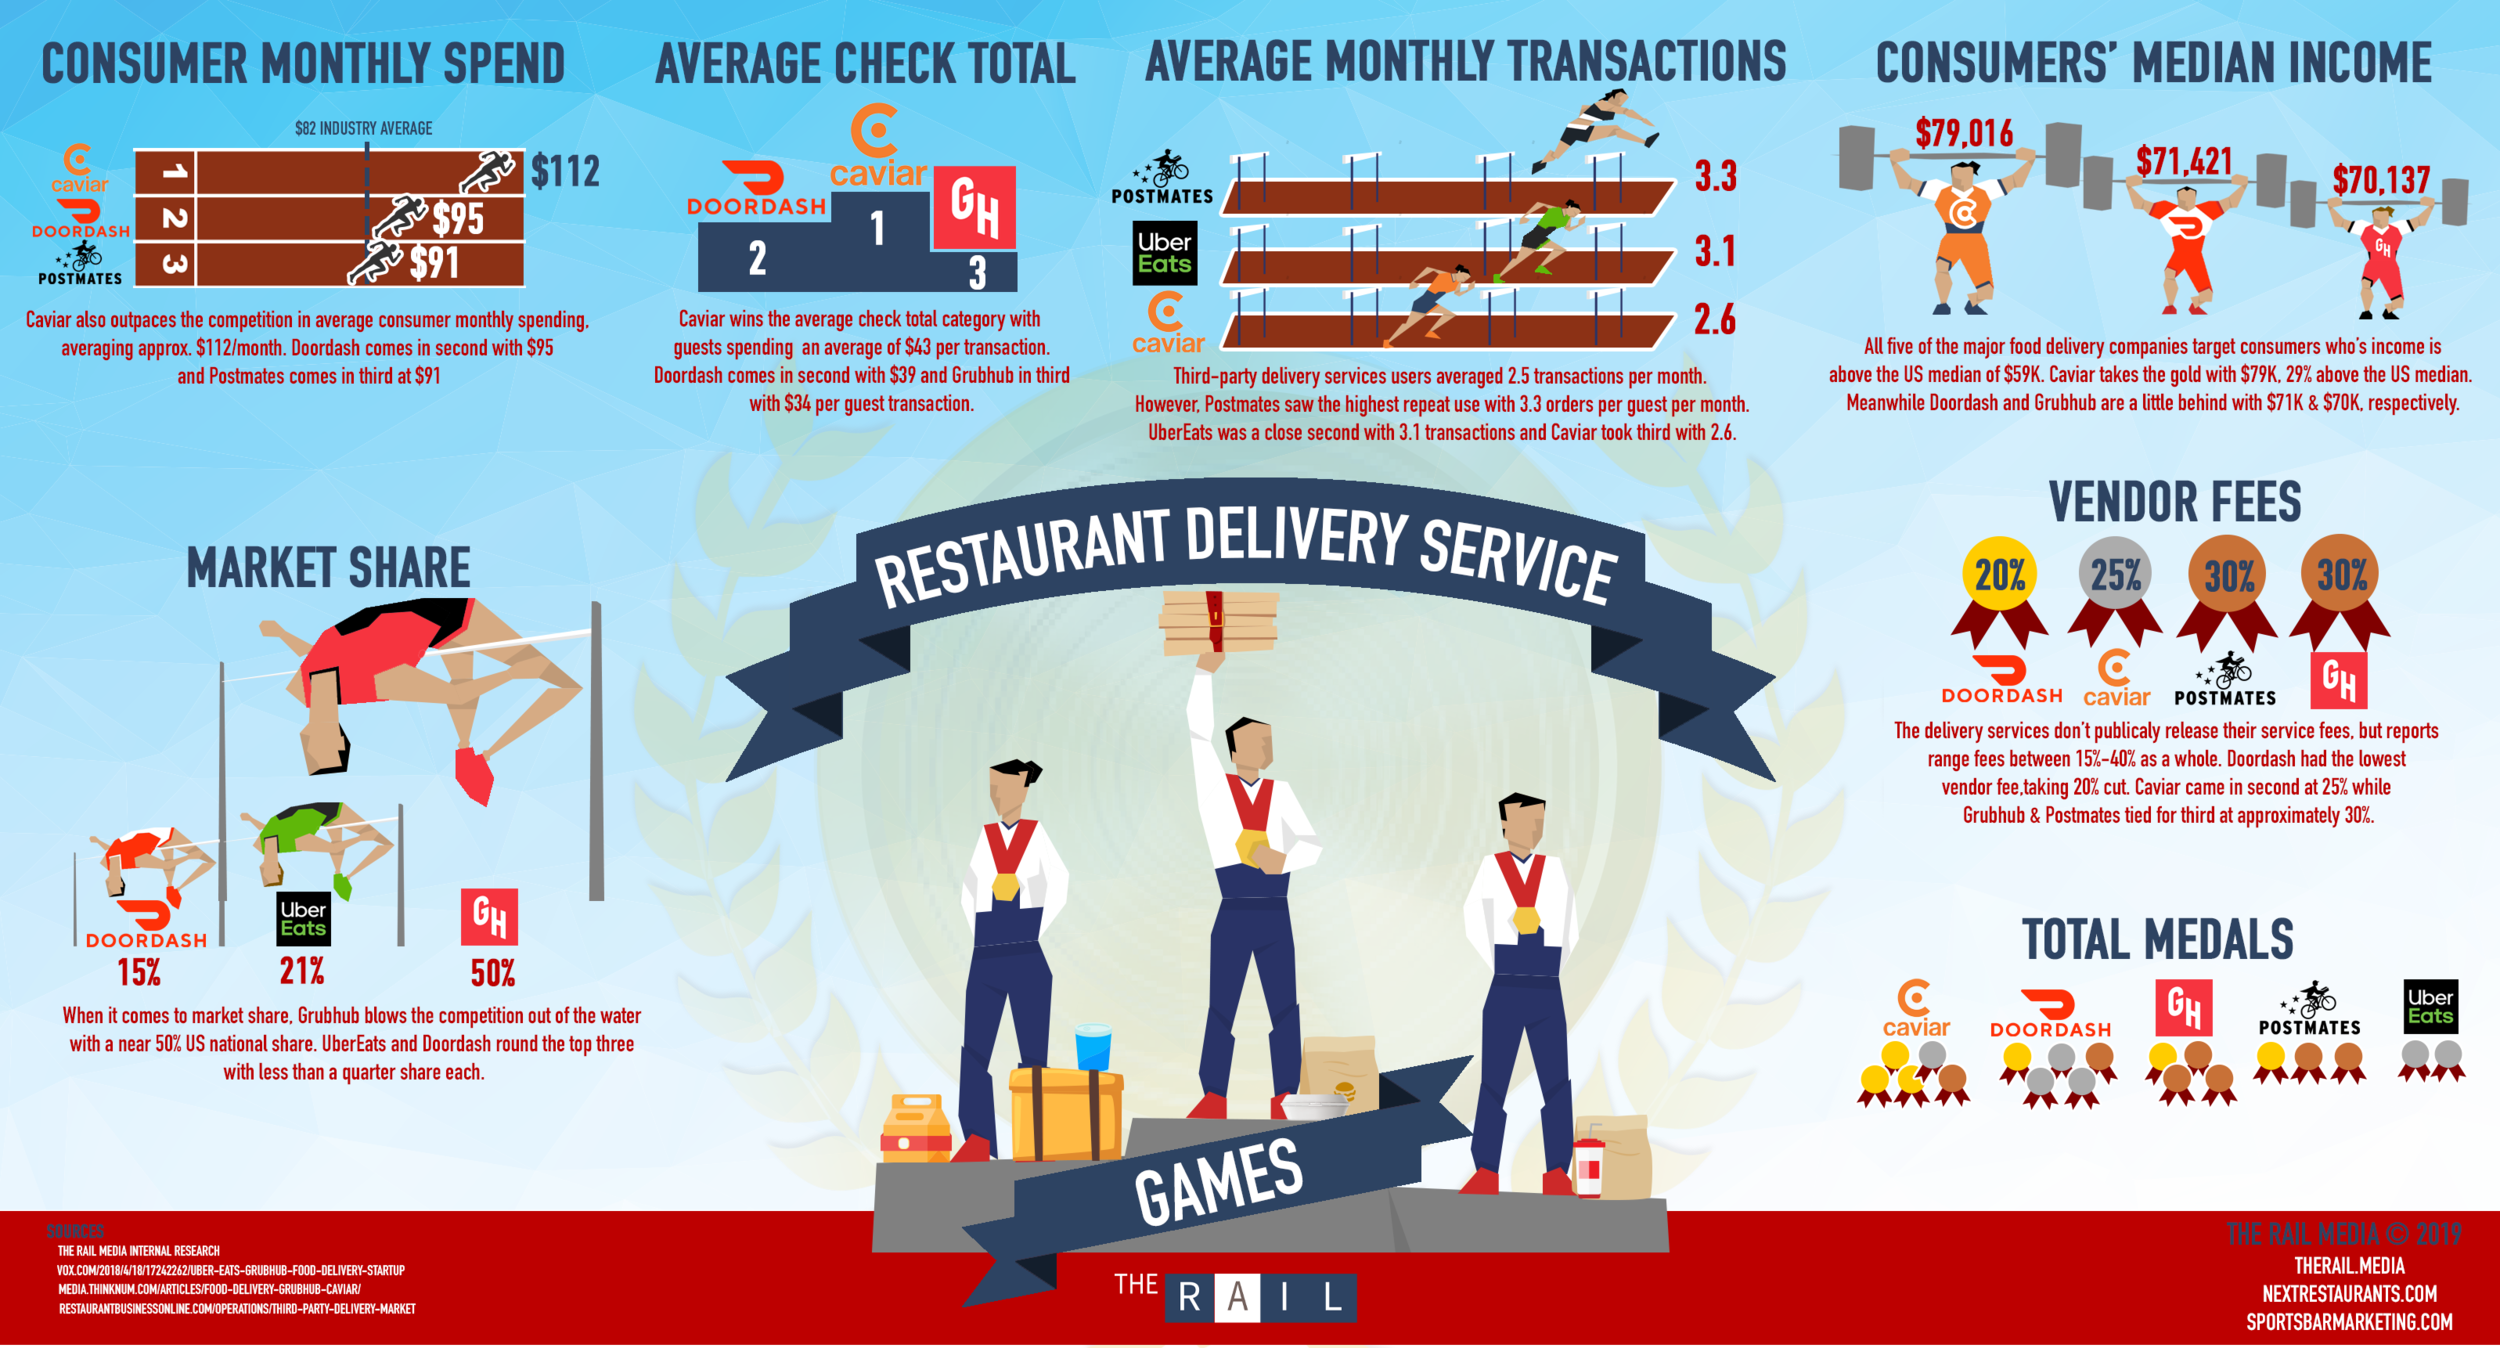 Who wins the Third-Party Restaurant Delivery Service Games?